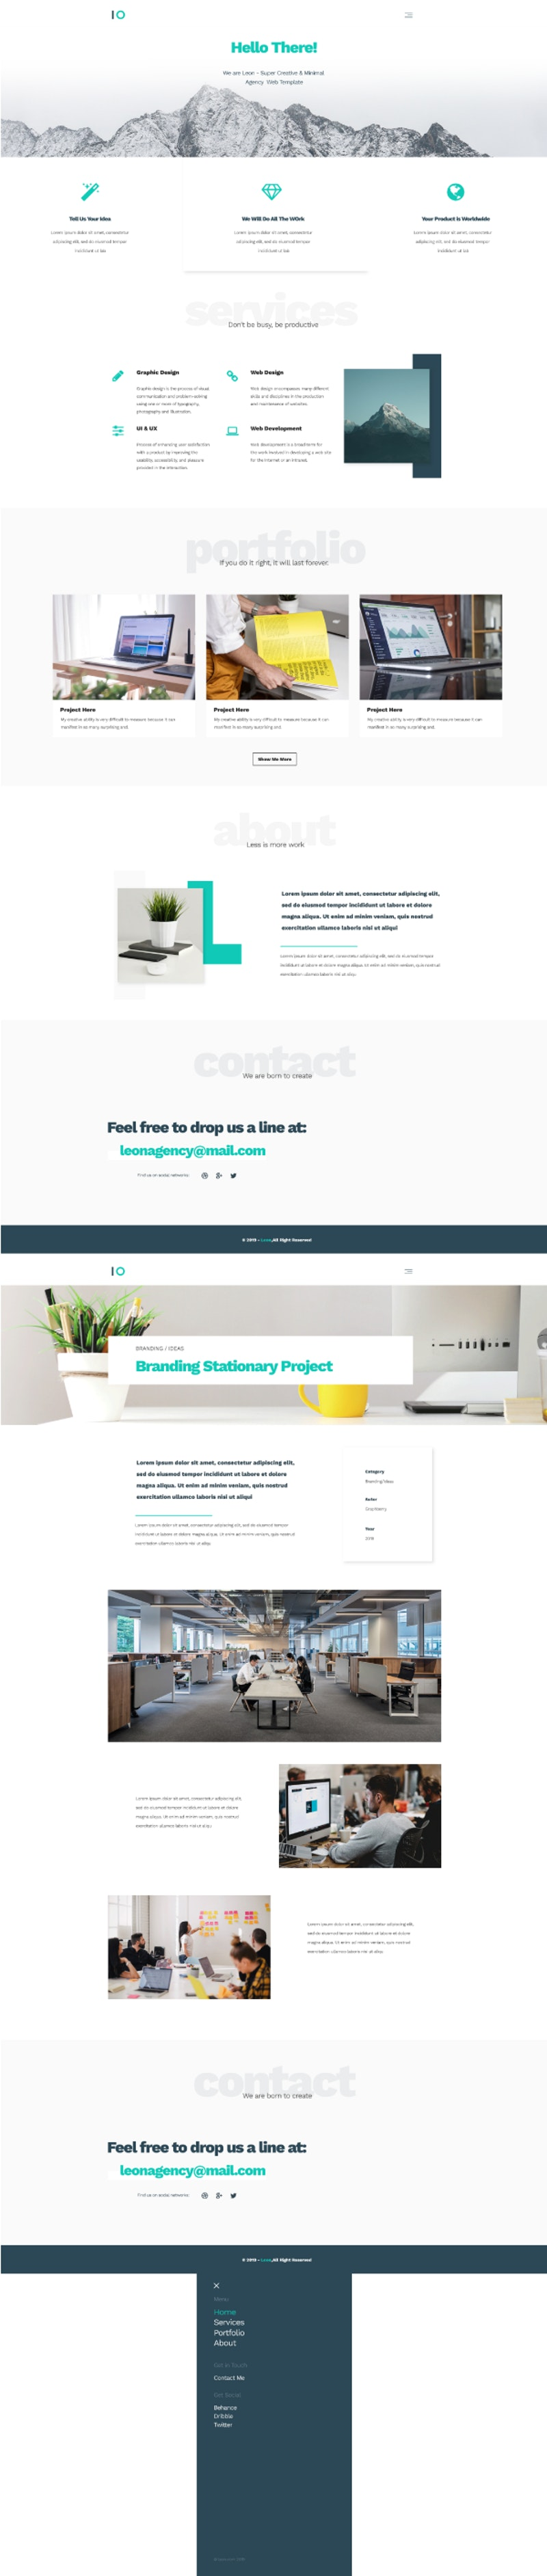 Leon - PSD Agency Template preview